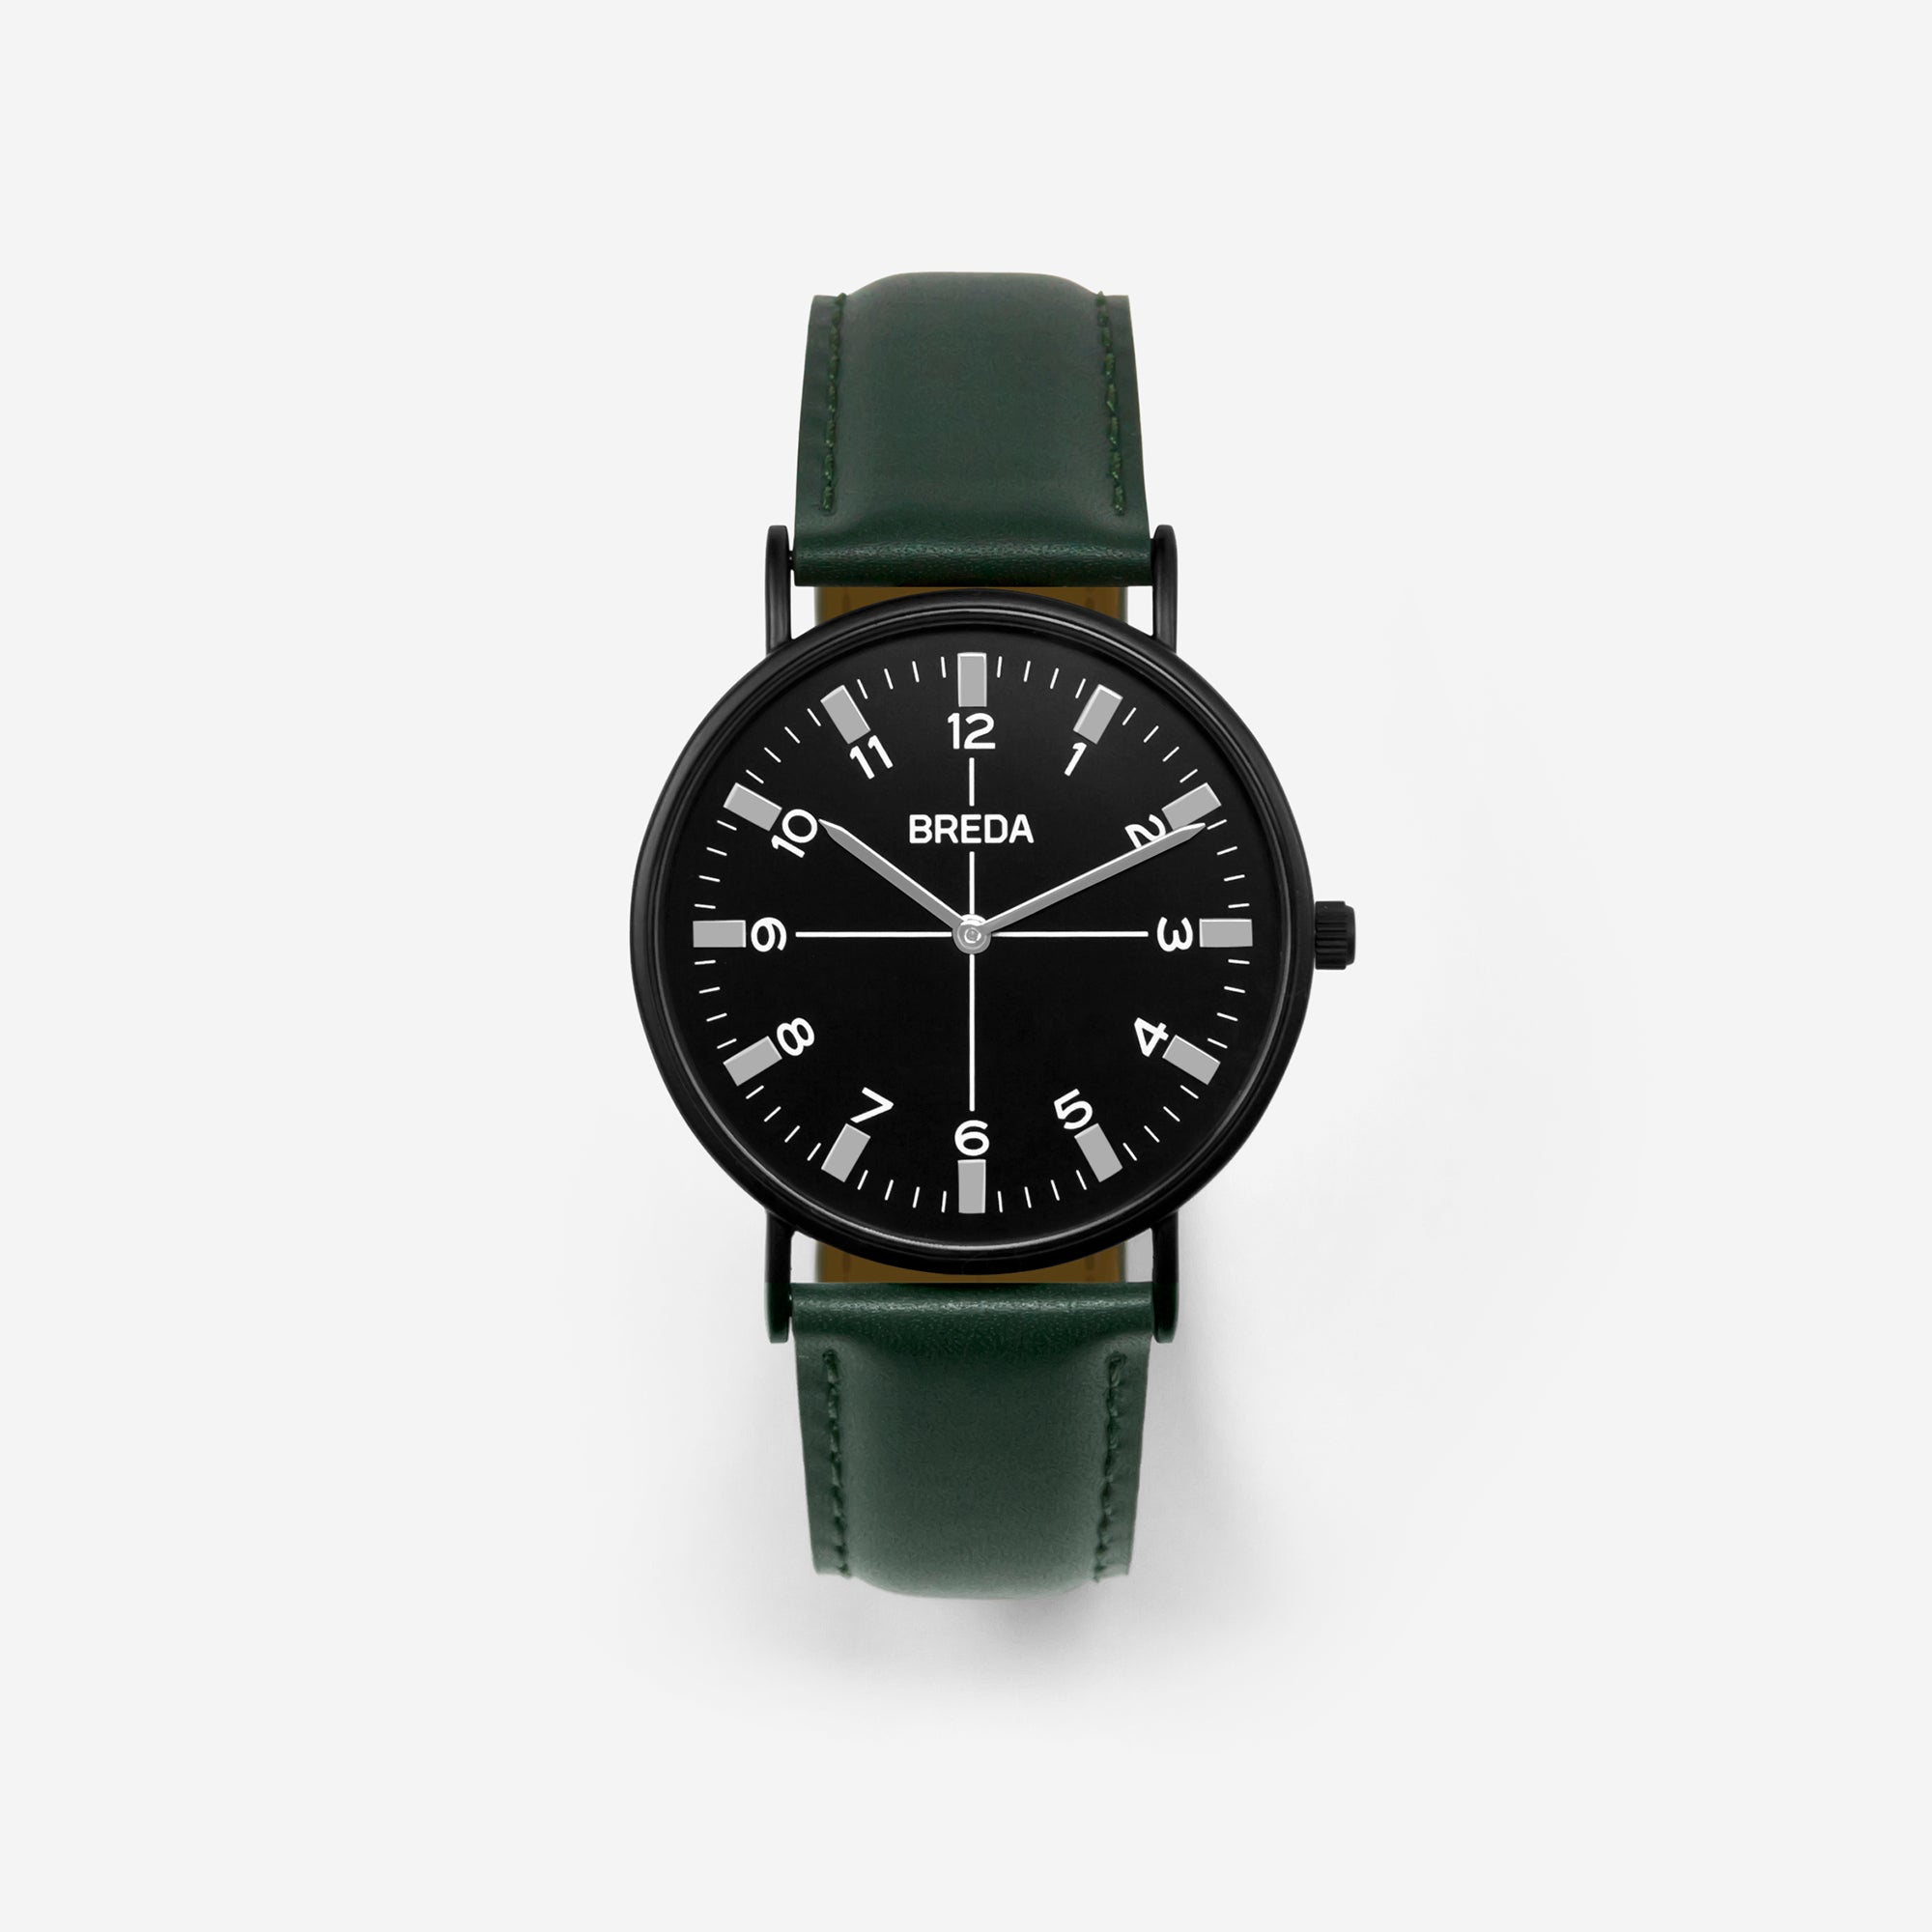 //cdn.shopify.com/s/files/1/0879/6650/products/BREDA-Belmont-1646j-Black-Green-Watch-Front_f3797f52-2204-4e08-ac87-eb44498a7abe_1024x1024.jpg?v=1543249383